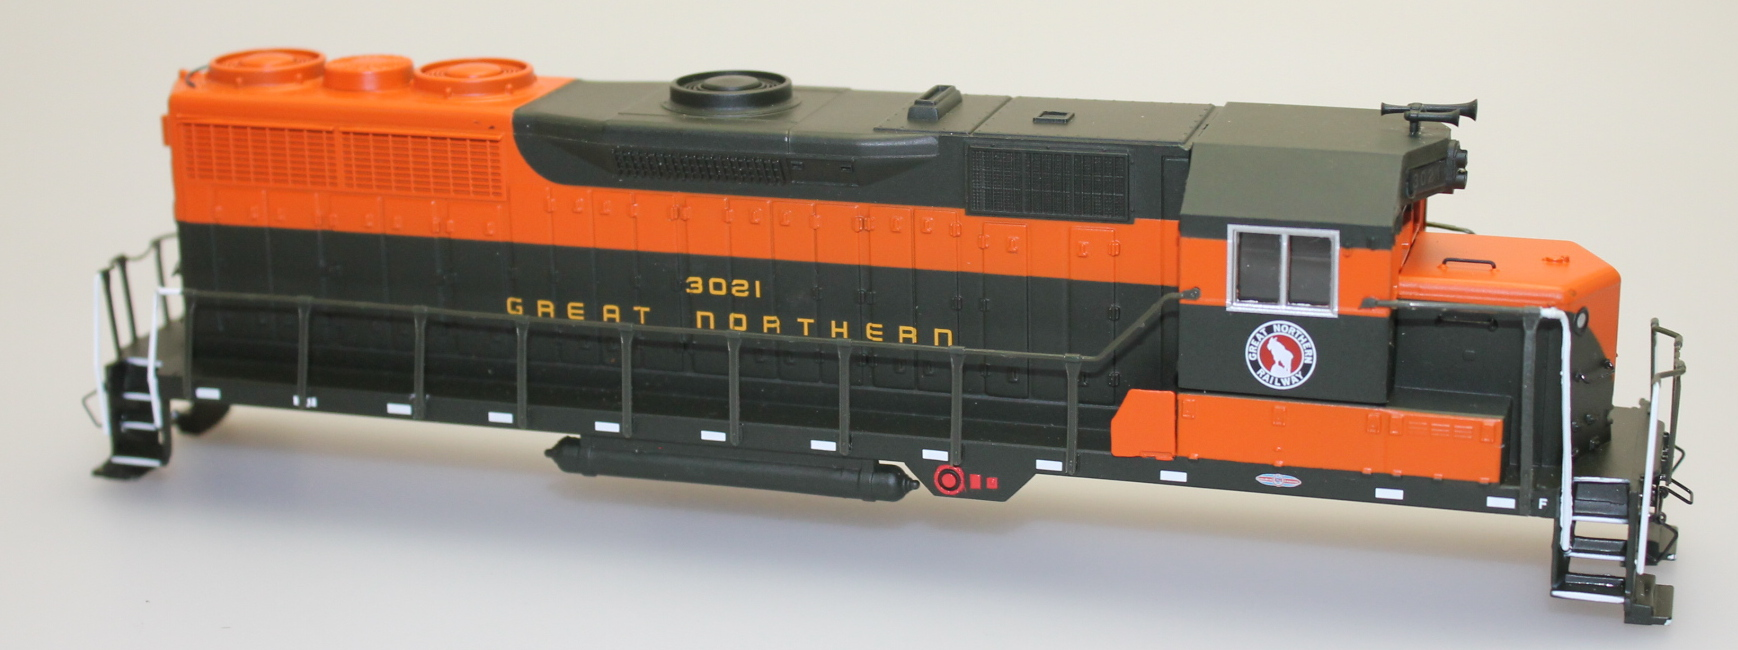 Shell - Great Northern #3021 (HO GP35)